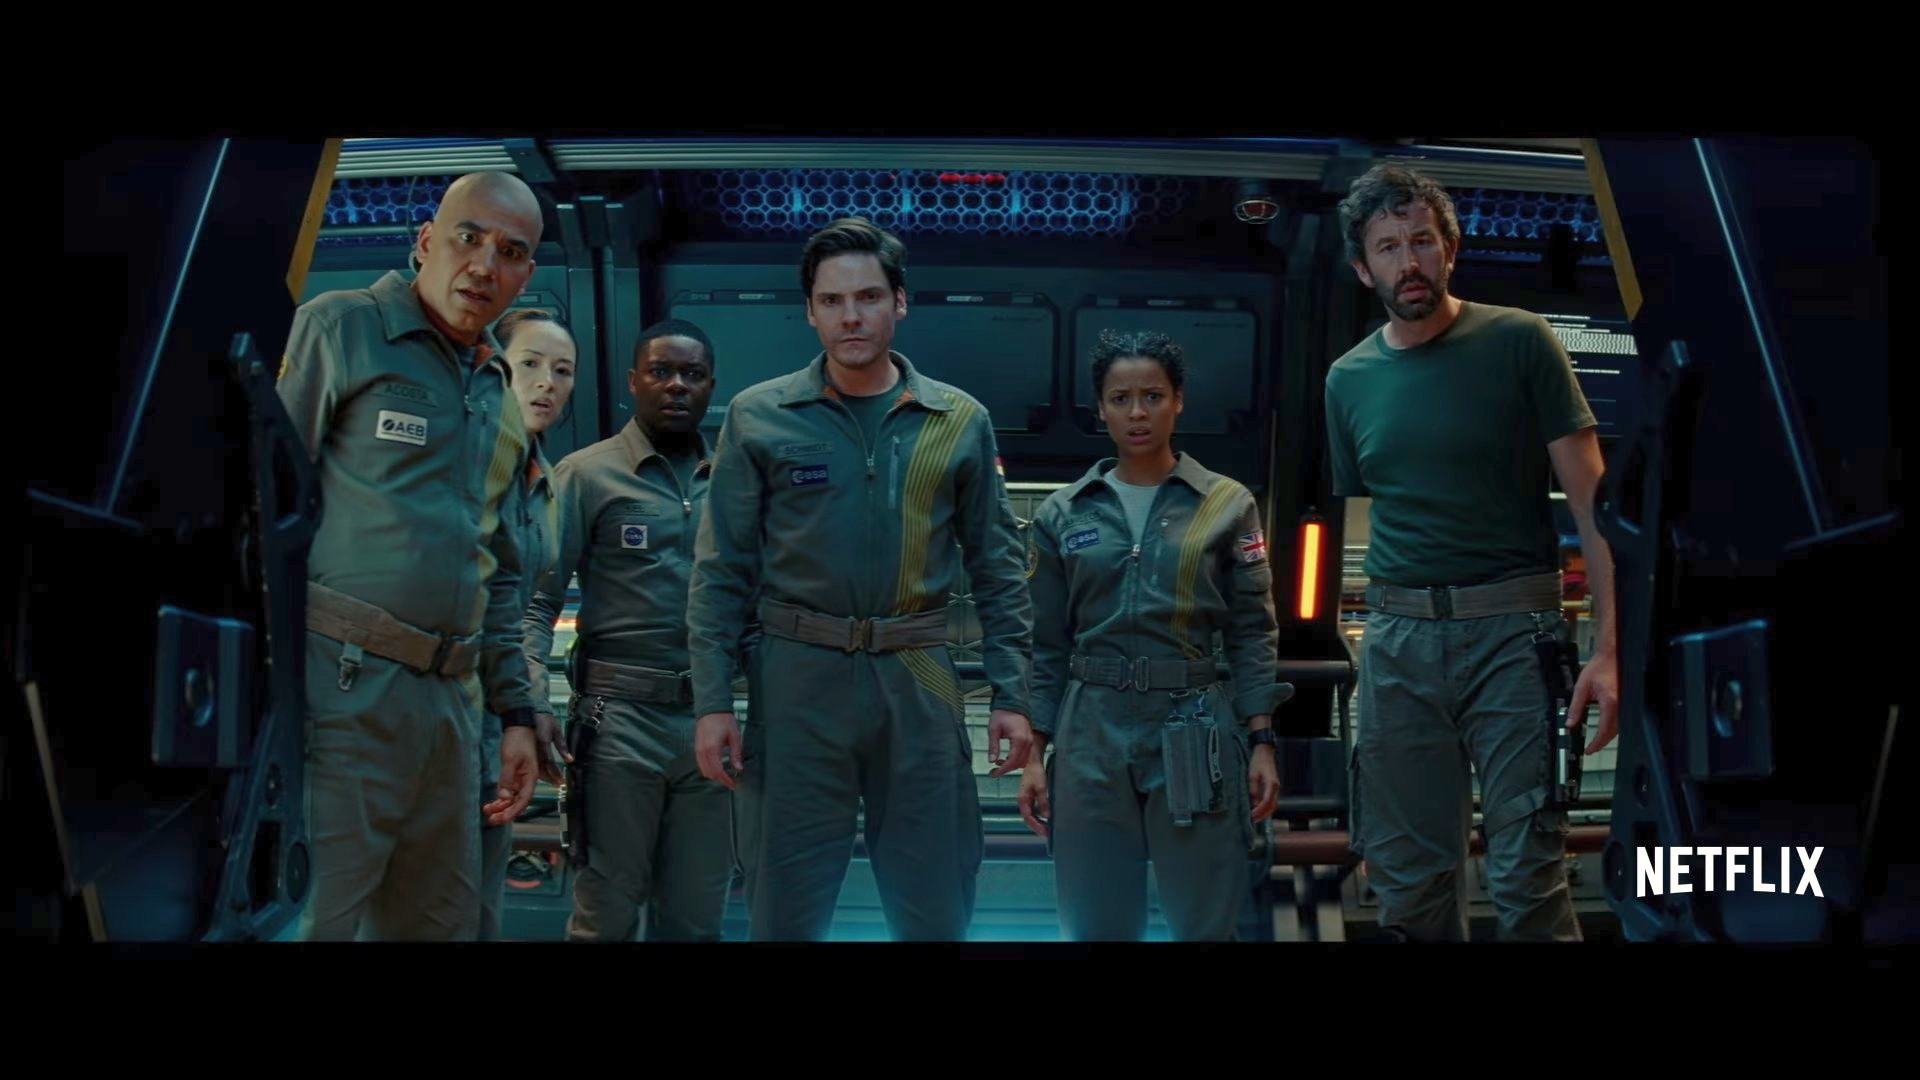 The Cloverfield Paradox is a stunt release tied to a mediocre movie